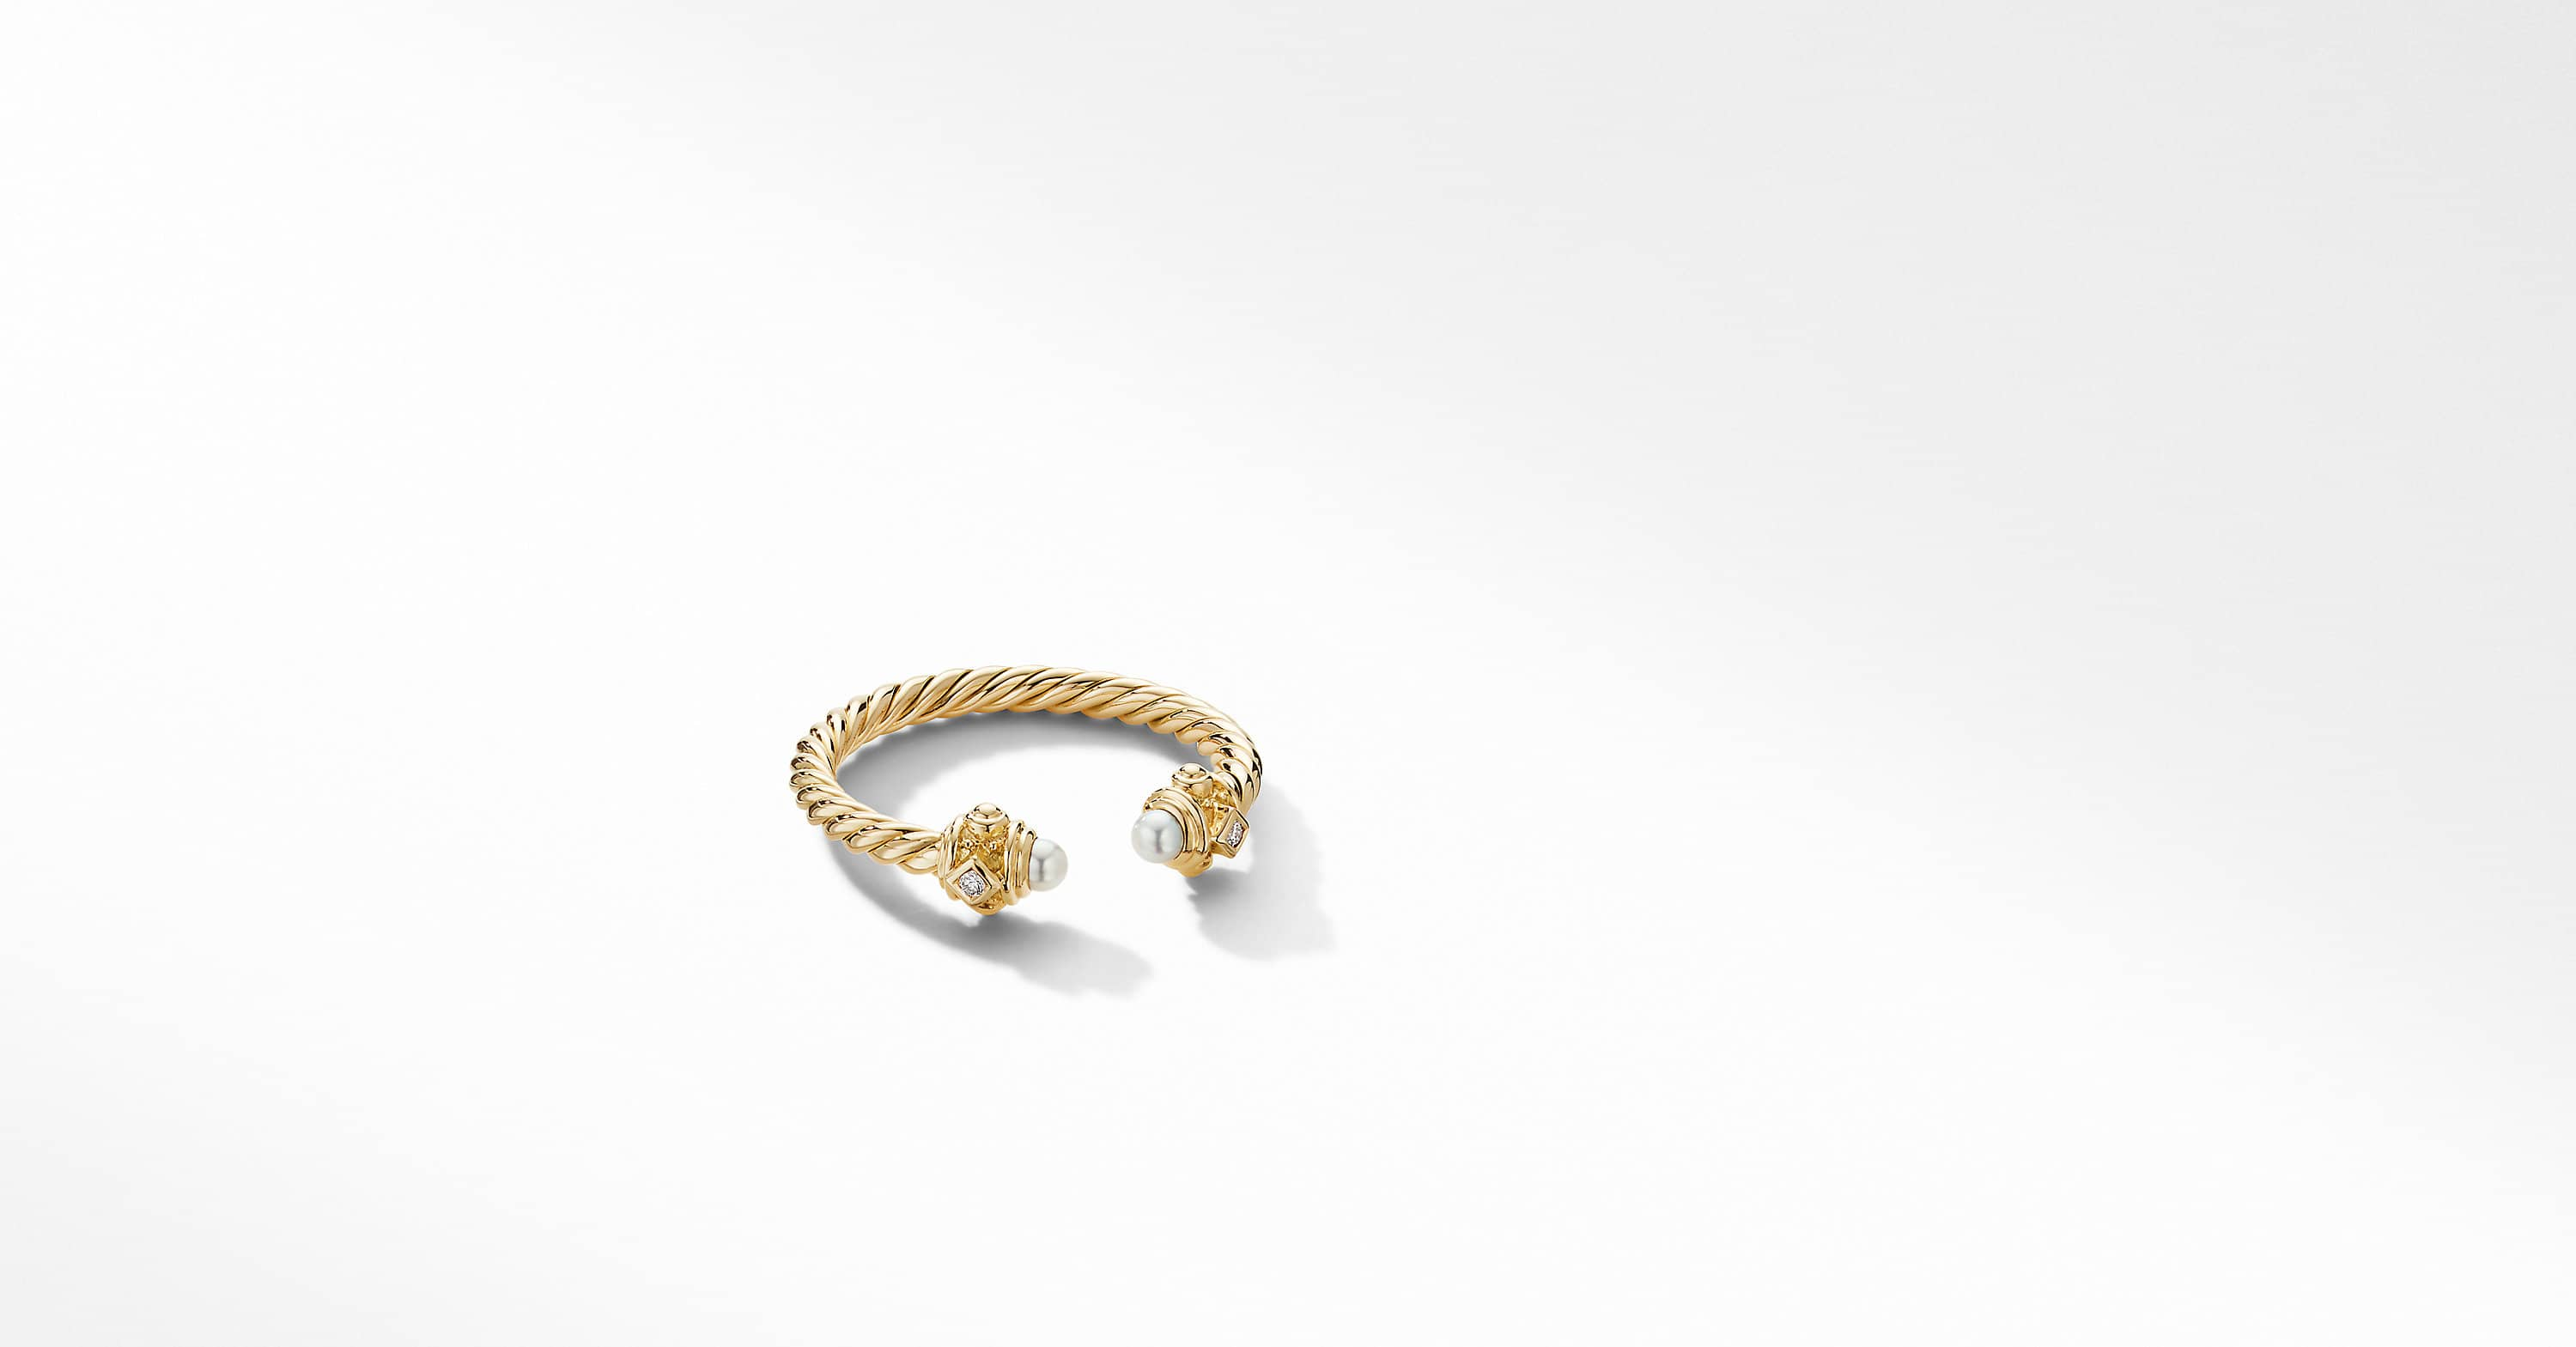 Renaissance Ring in 18K Yellow Gold with Diamonds